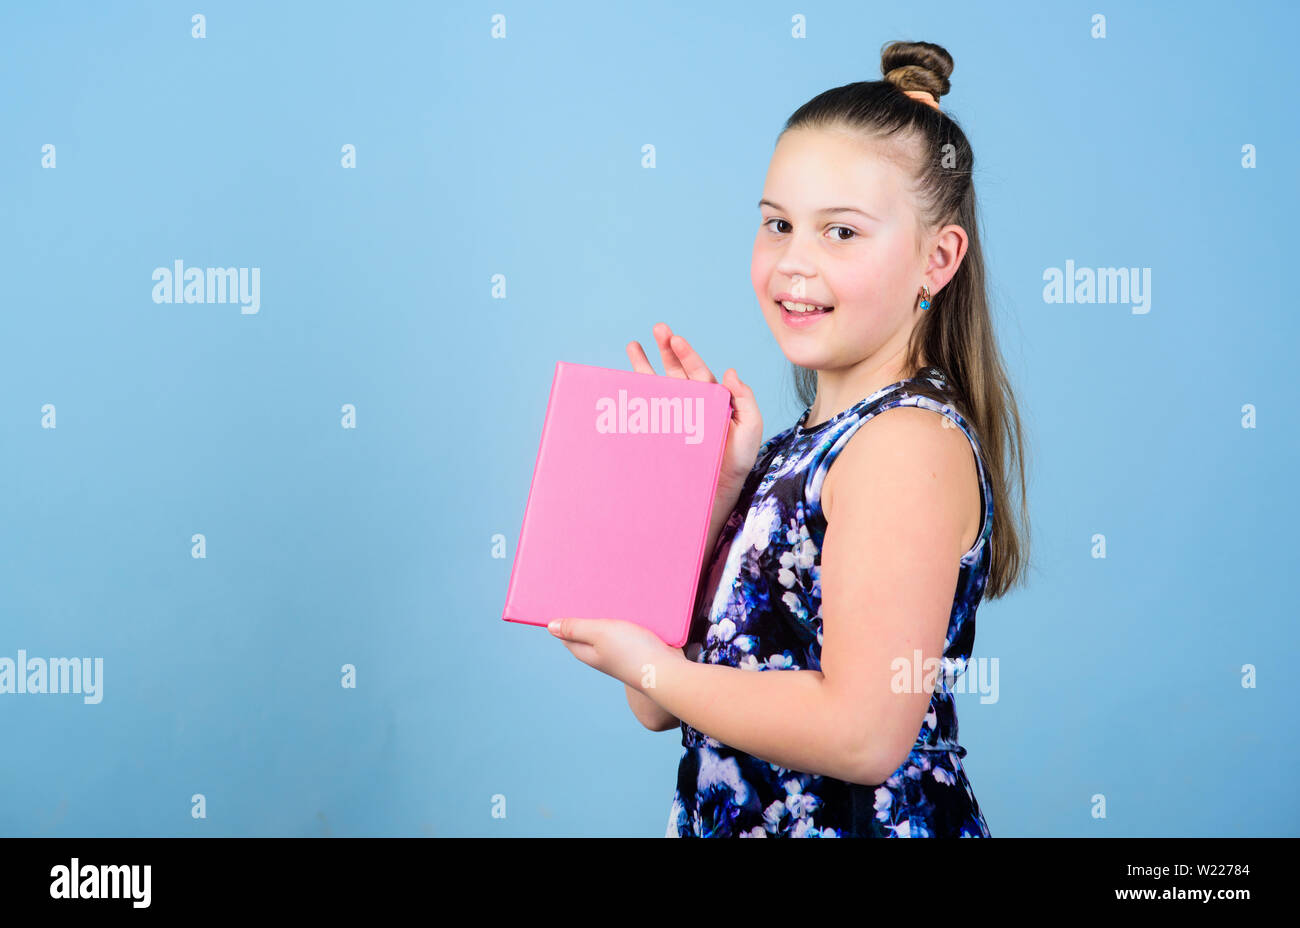 Keeping secrets here. design expert. pr-specialist. small girl with pink note book. school child with notepad. workbooks for writing. school diaries for making notes. Keeping her secrets in diary. - Stock Image